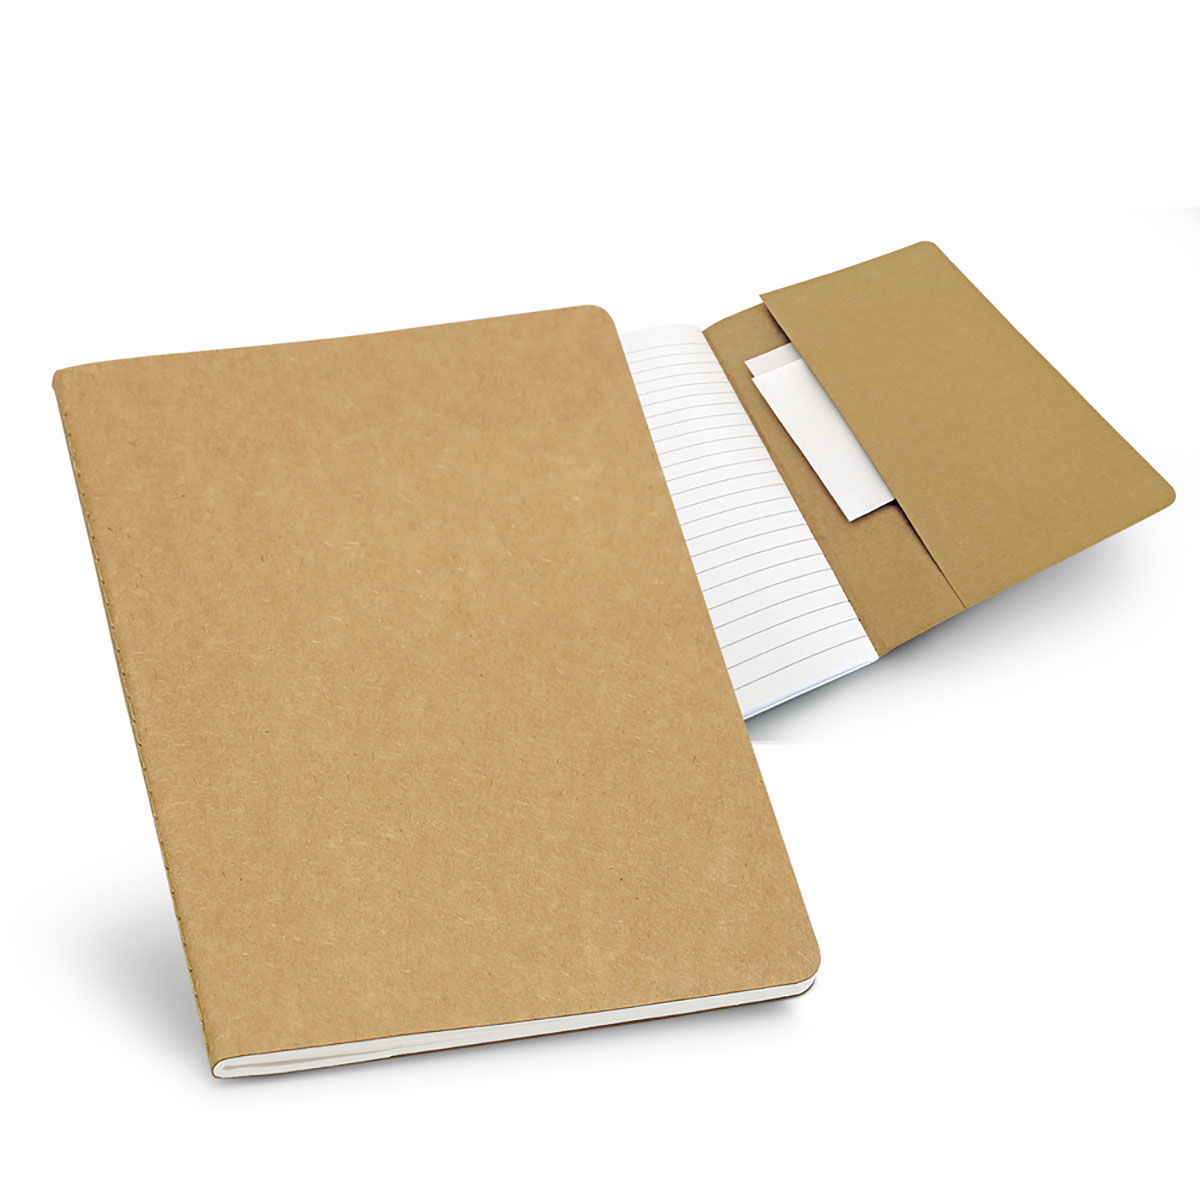 Notepad with recycled paper